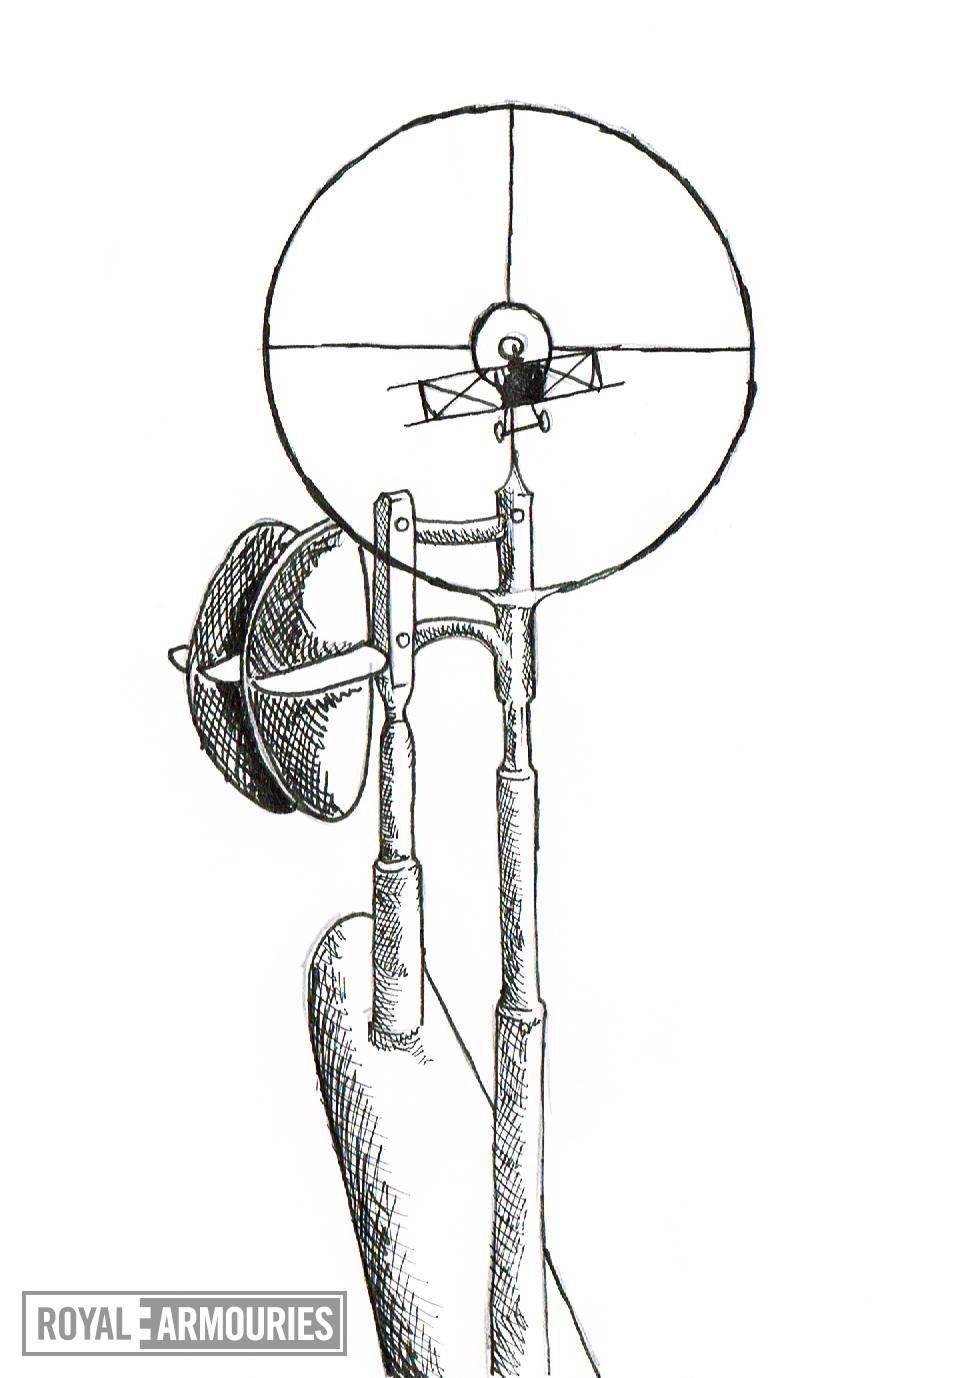 Black and white drawing of an aircraft vane sight.The vane sight was invented by Lieutenant G H Norman, Workshop Officer of 18 Squadron, Royal Flying Corps. It compensated for the speed of the aircraft that the gun was mounted on.